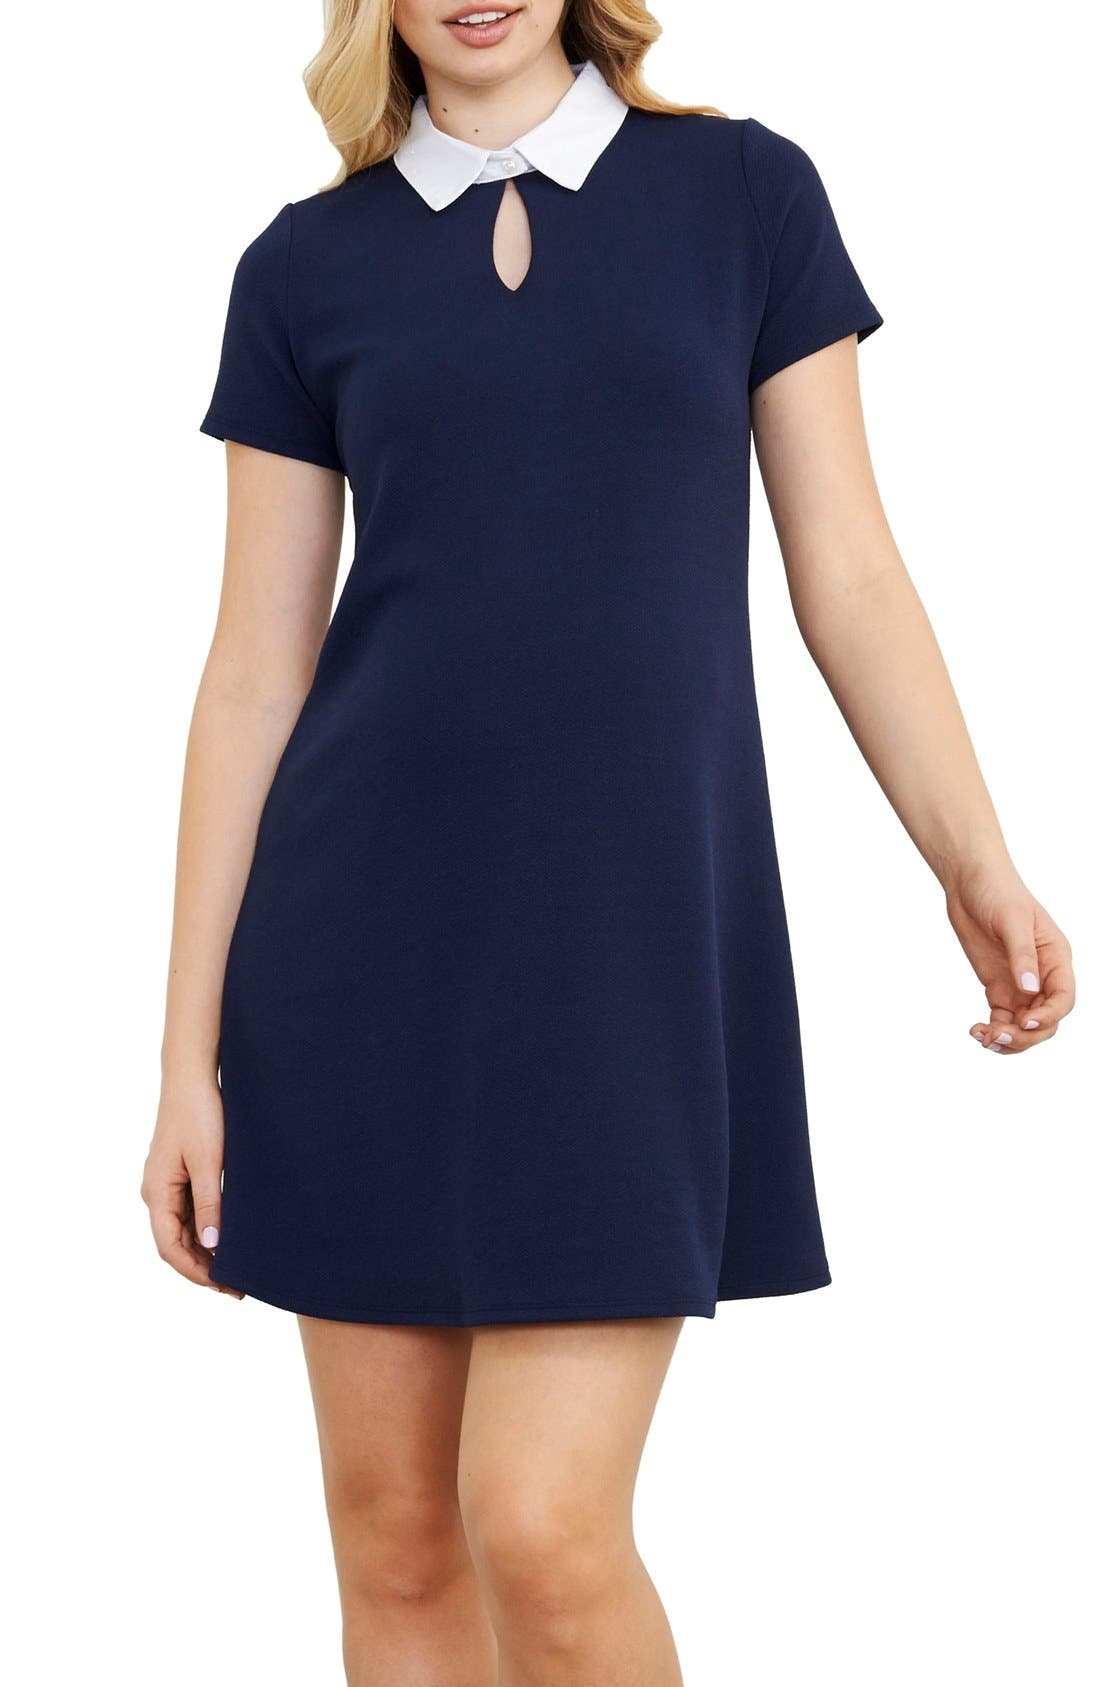 Maternal America Contrast Collar Maternity Dress